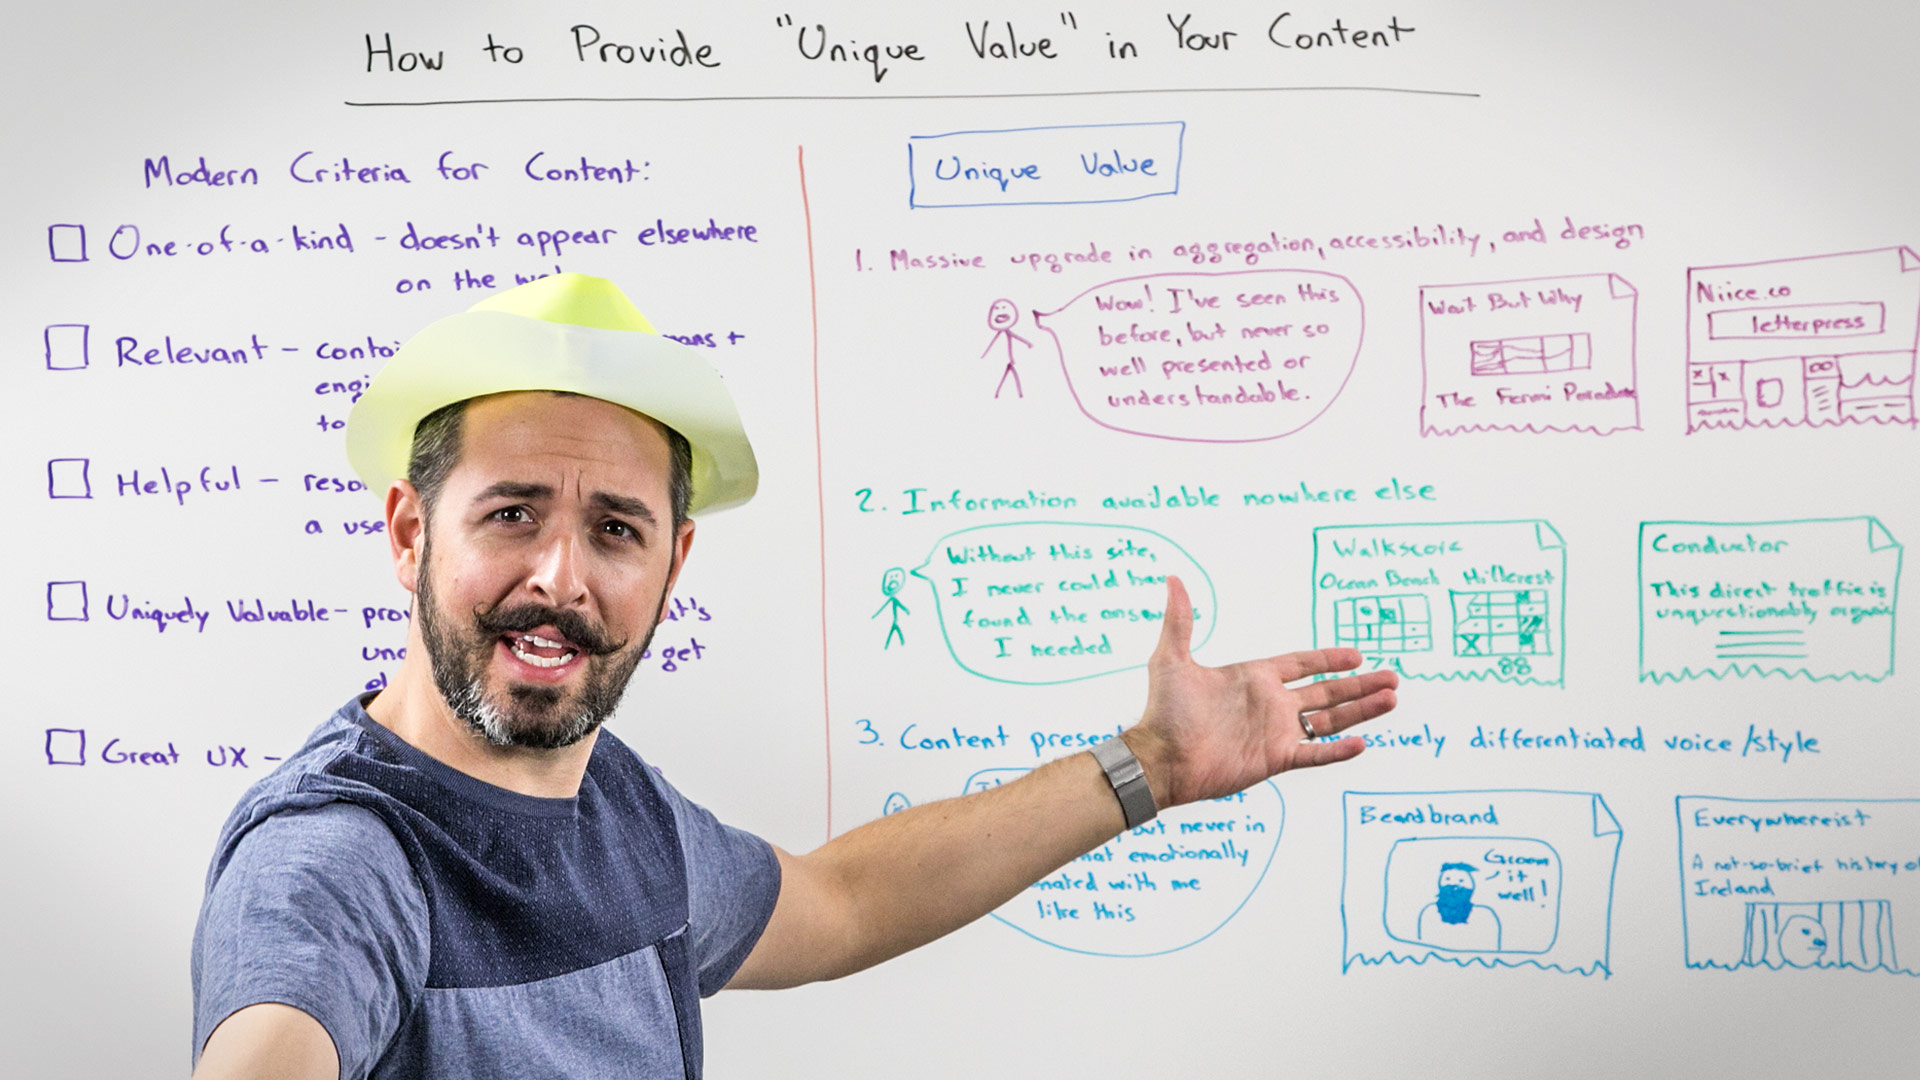 How To Provide Unique Value In Your Content